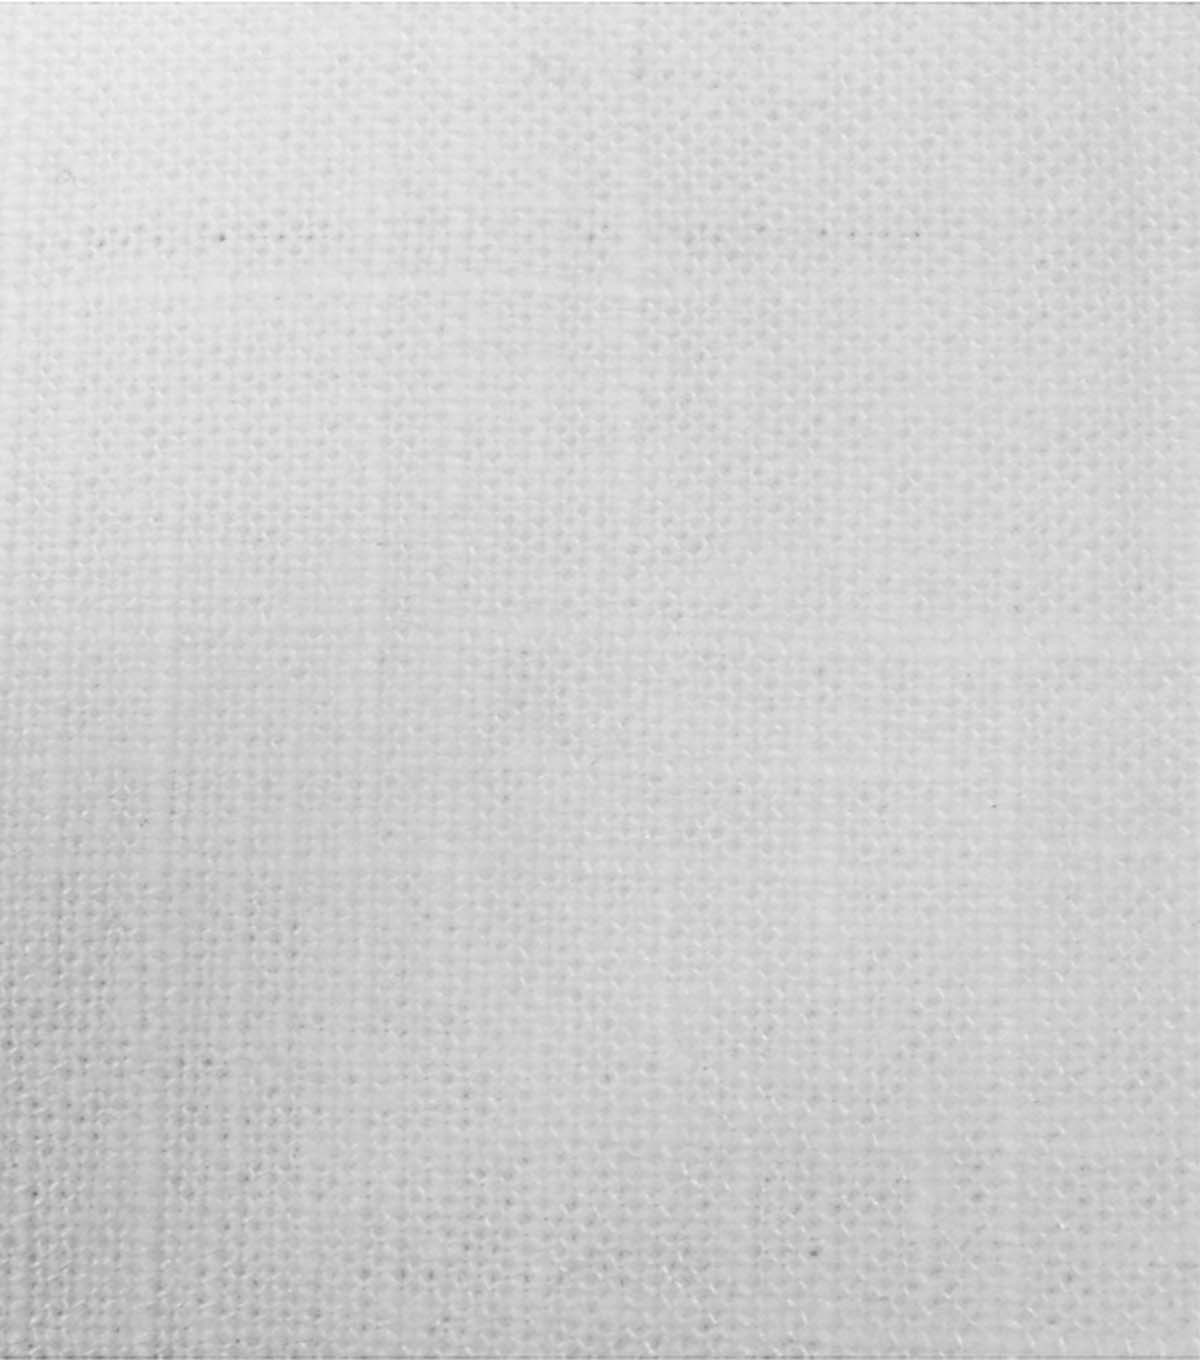 Signature Series Lightweight Decor Linen Fabric 54u0022 White